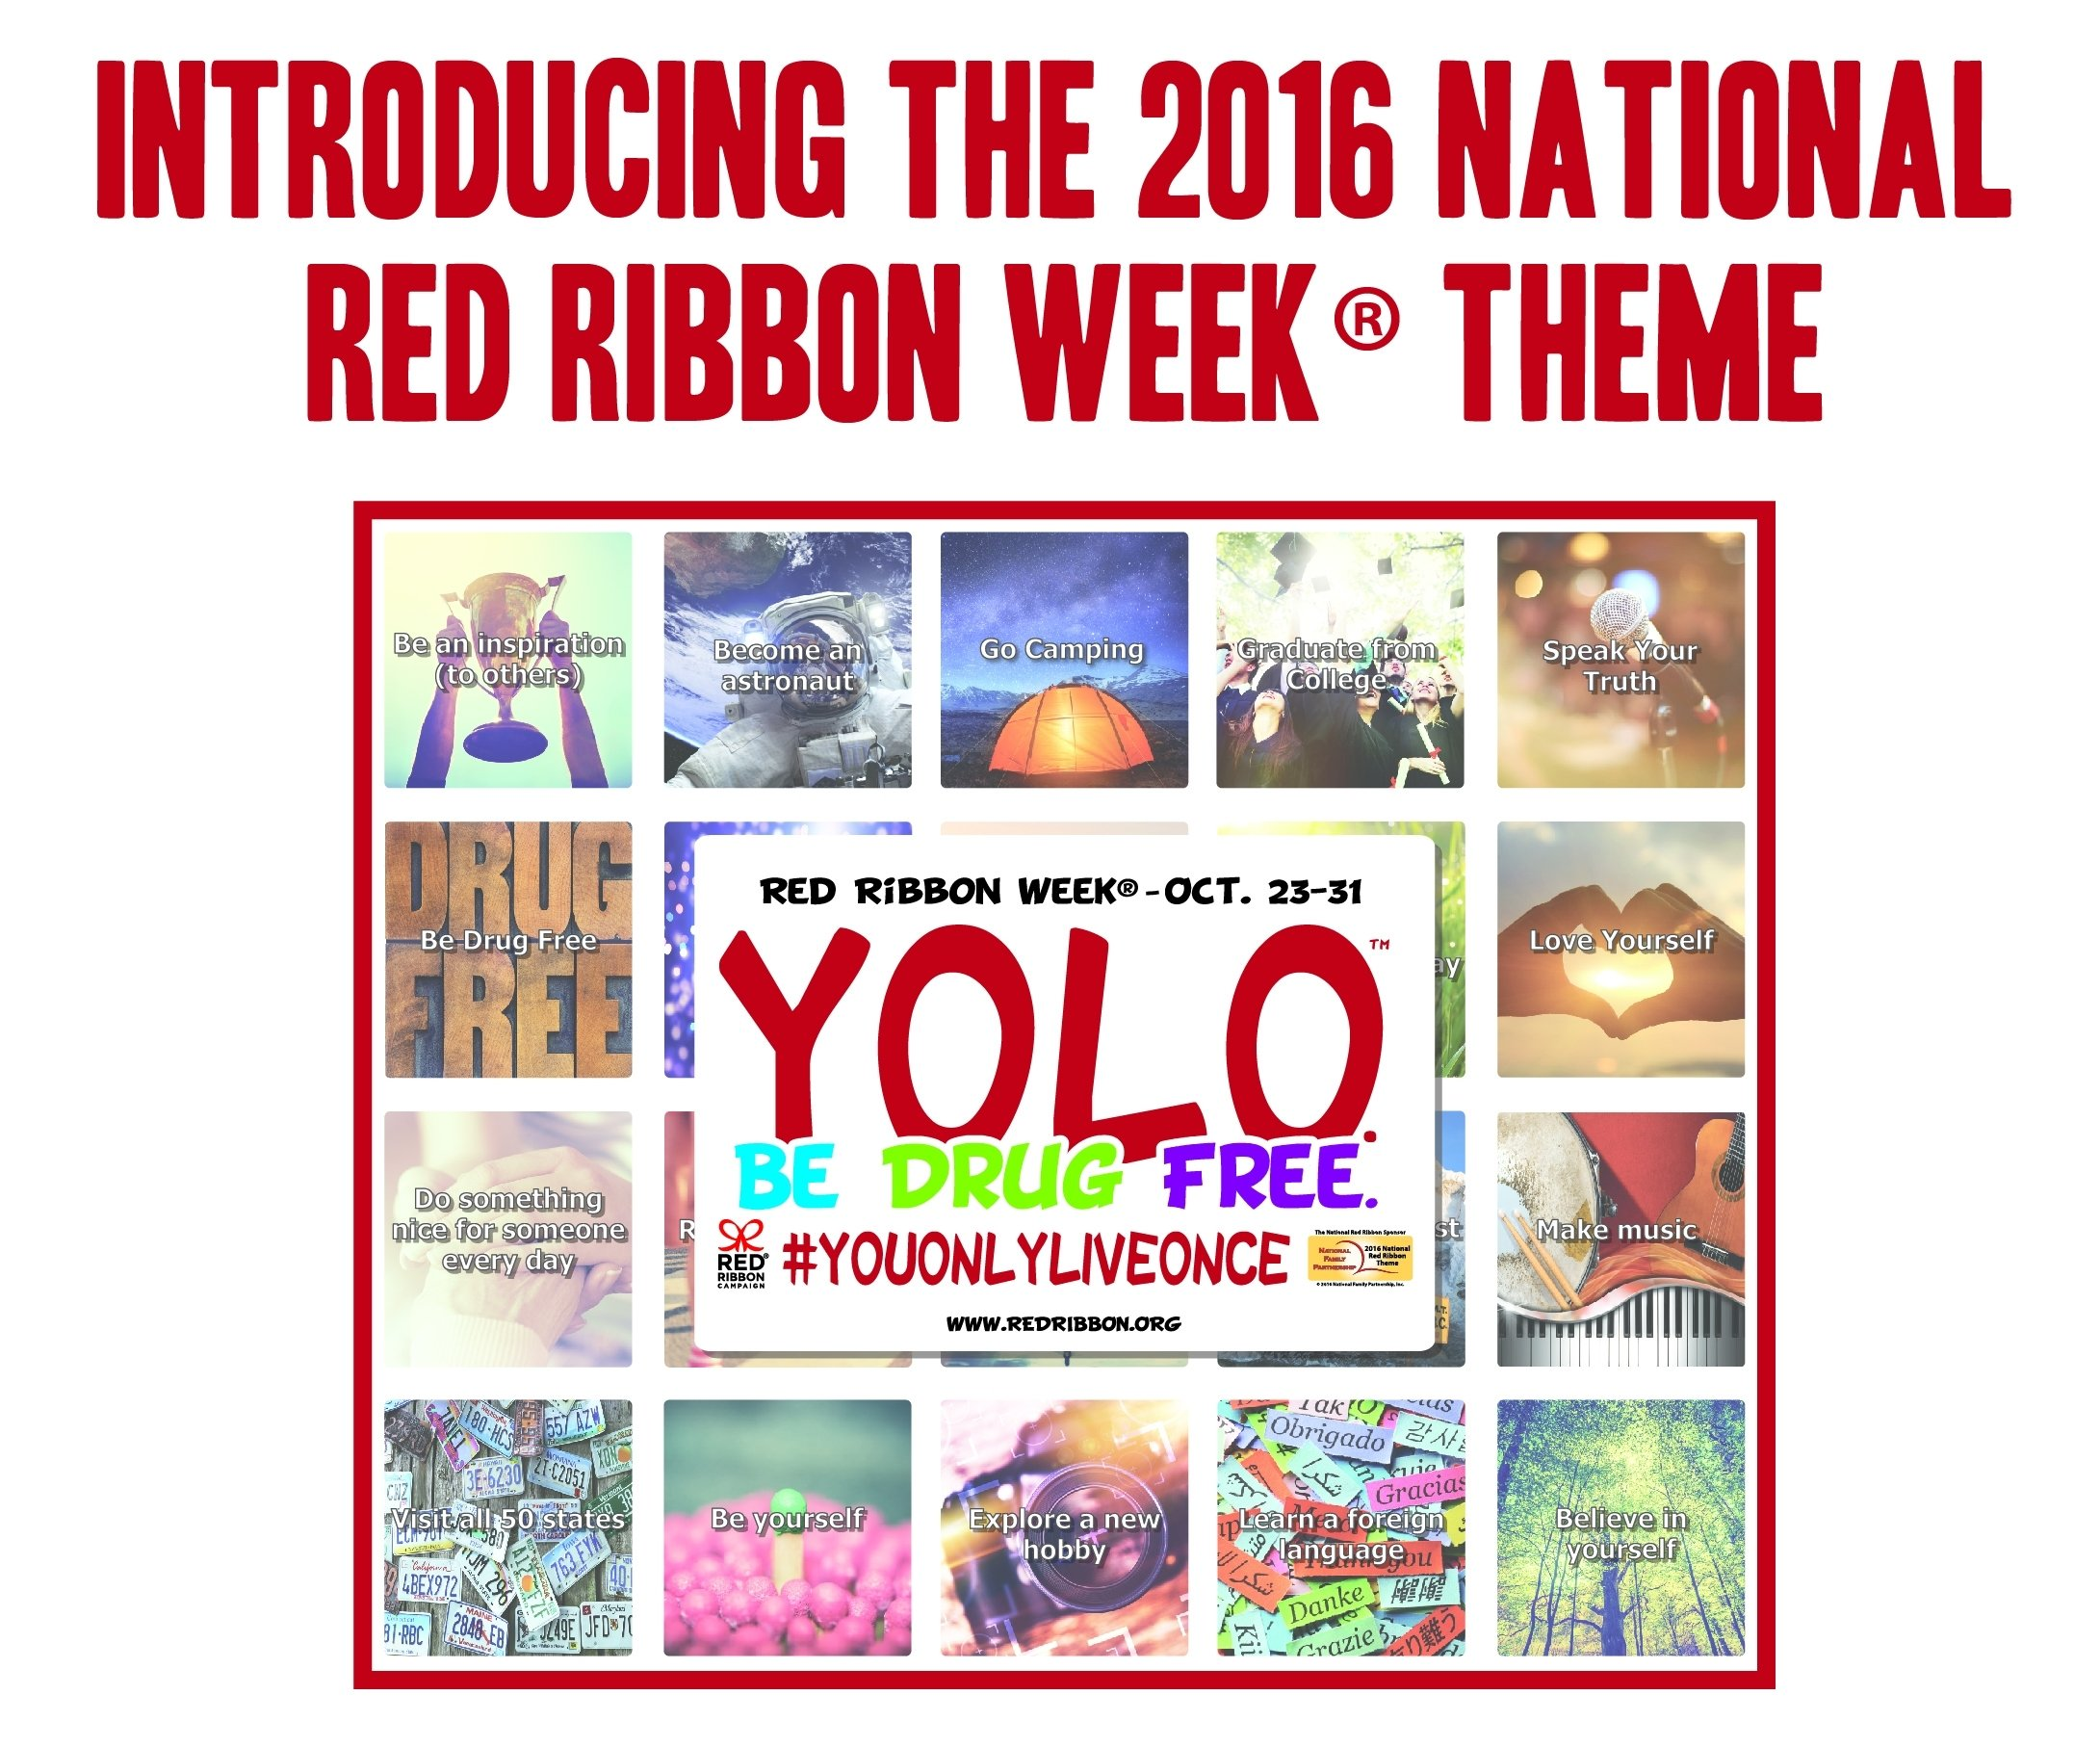 red ribbon campaign: 2016 theme announcement!